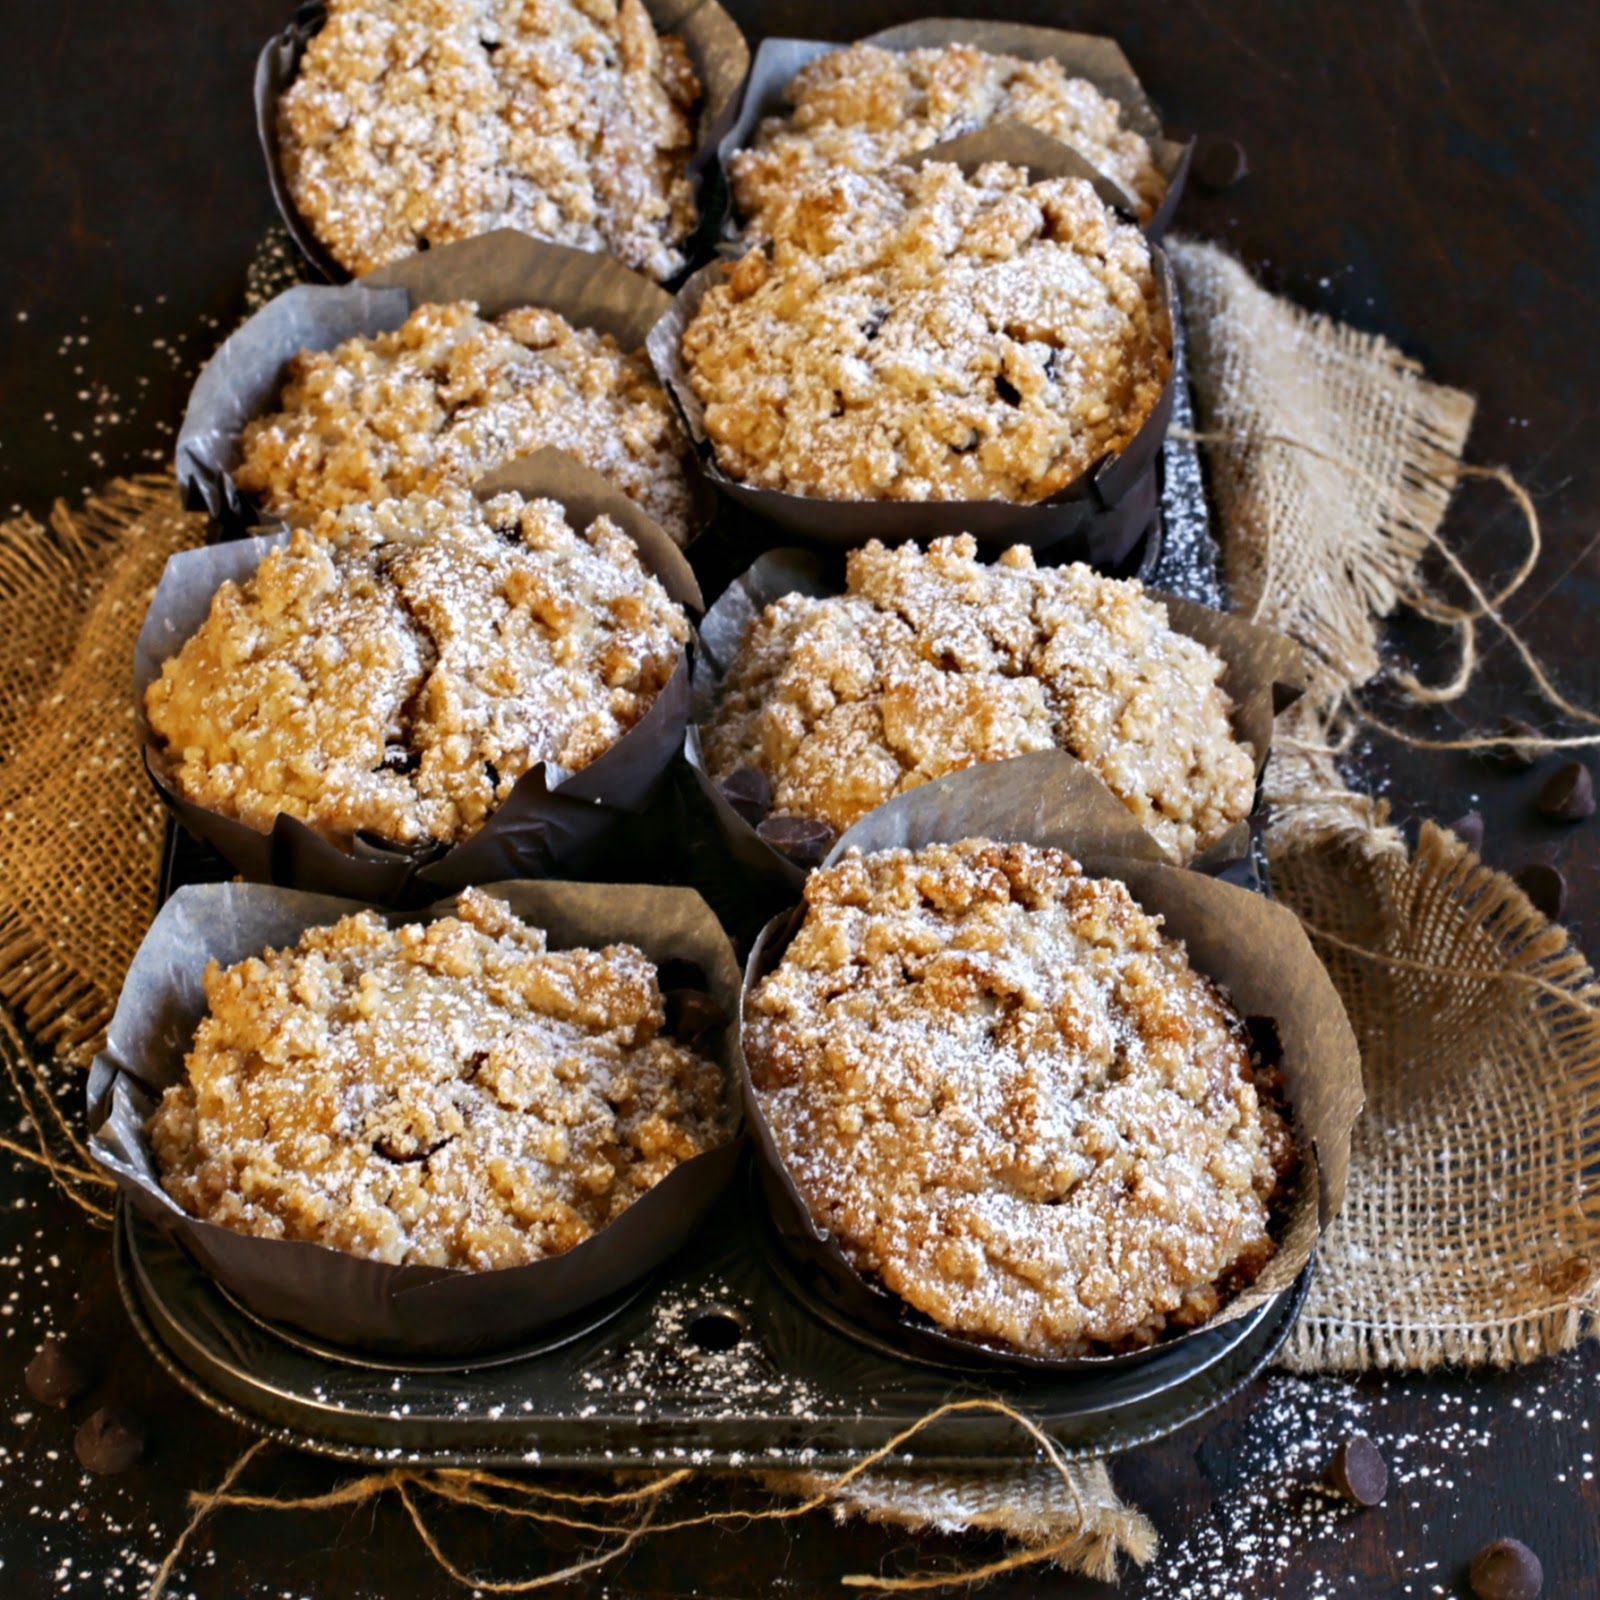 Recipe for bakery style chocolate chip muffins with a crumb topping.